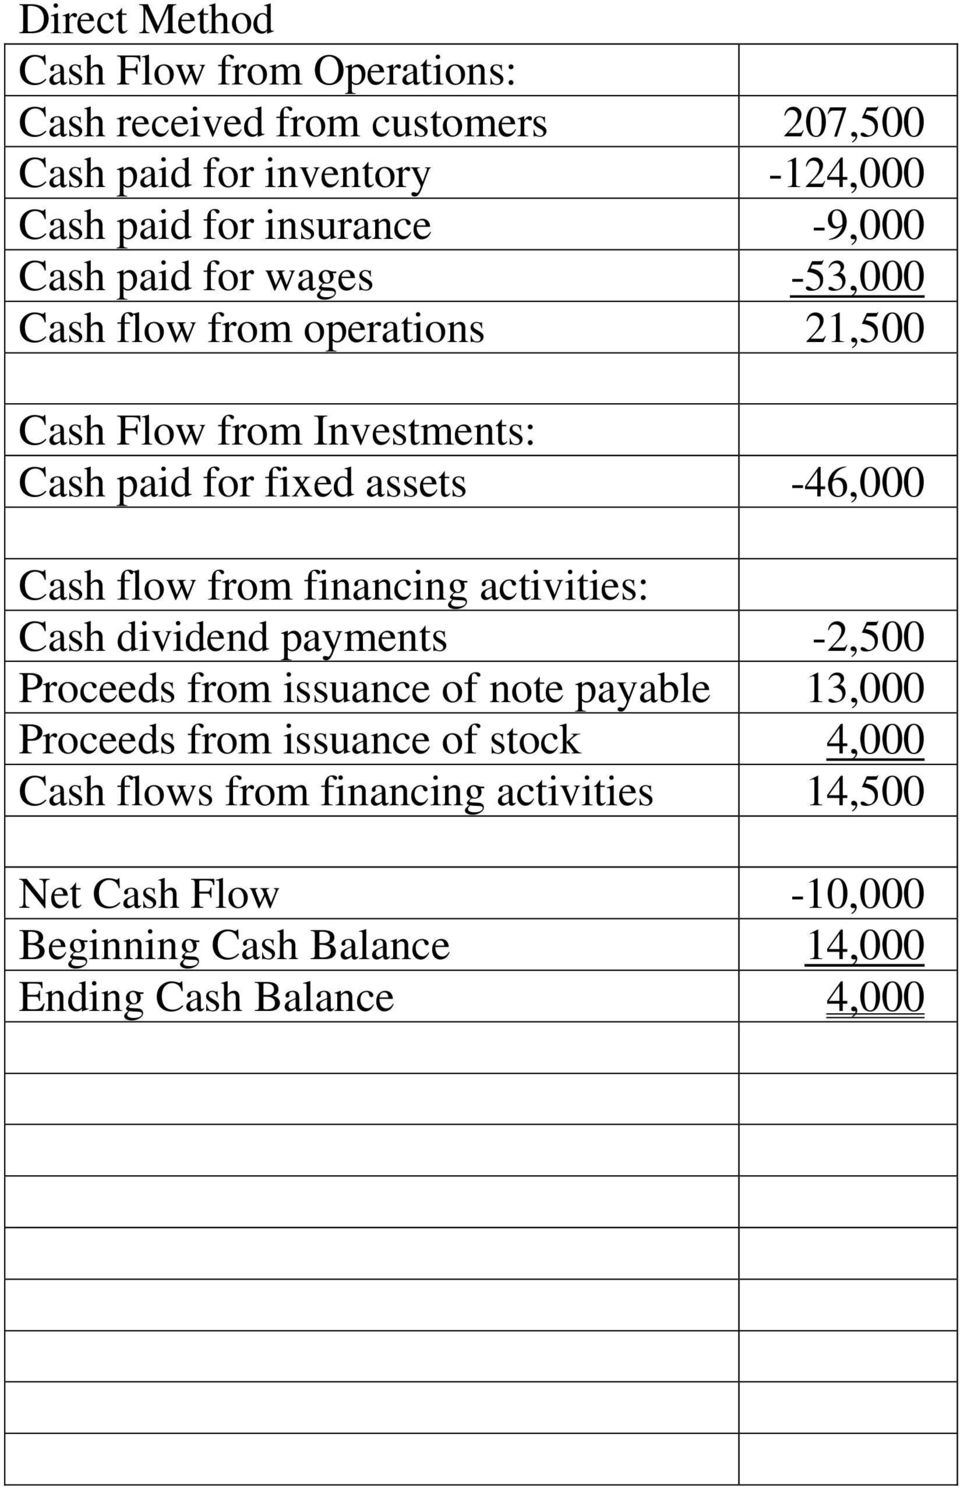 Cash flow from financing activities: Cash dividend payments -2,500 Proceeds from issuance of note payable 13,000 Proceeds from